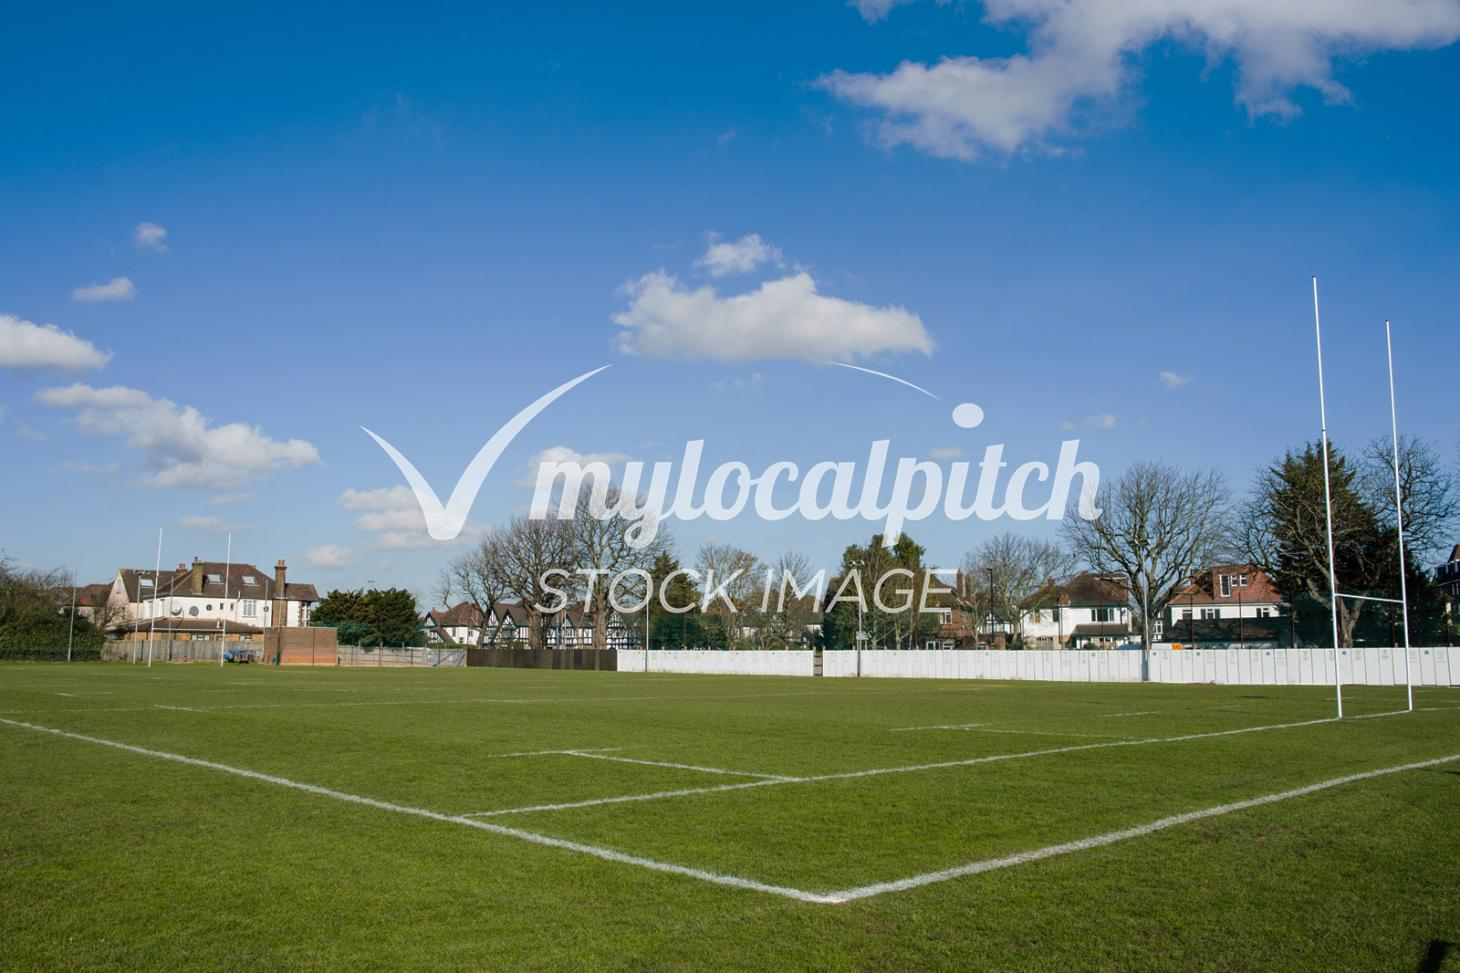 Home Park Public Union | Grass rugby pitch